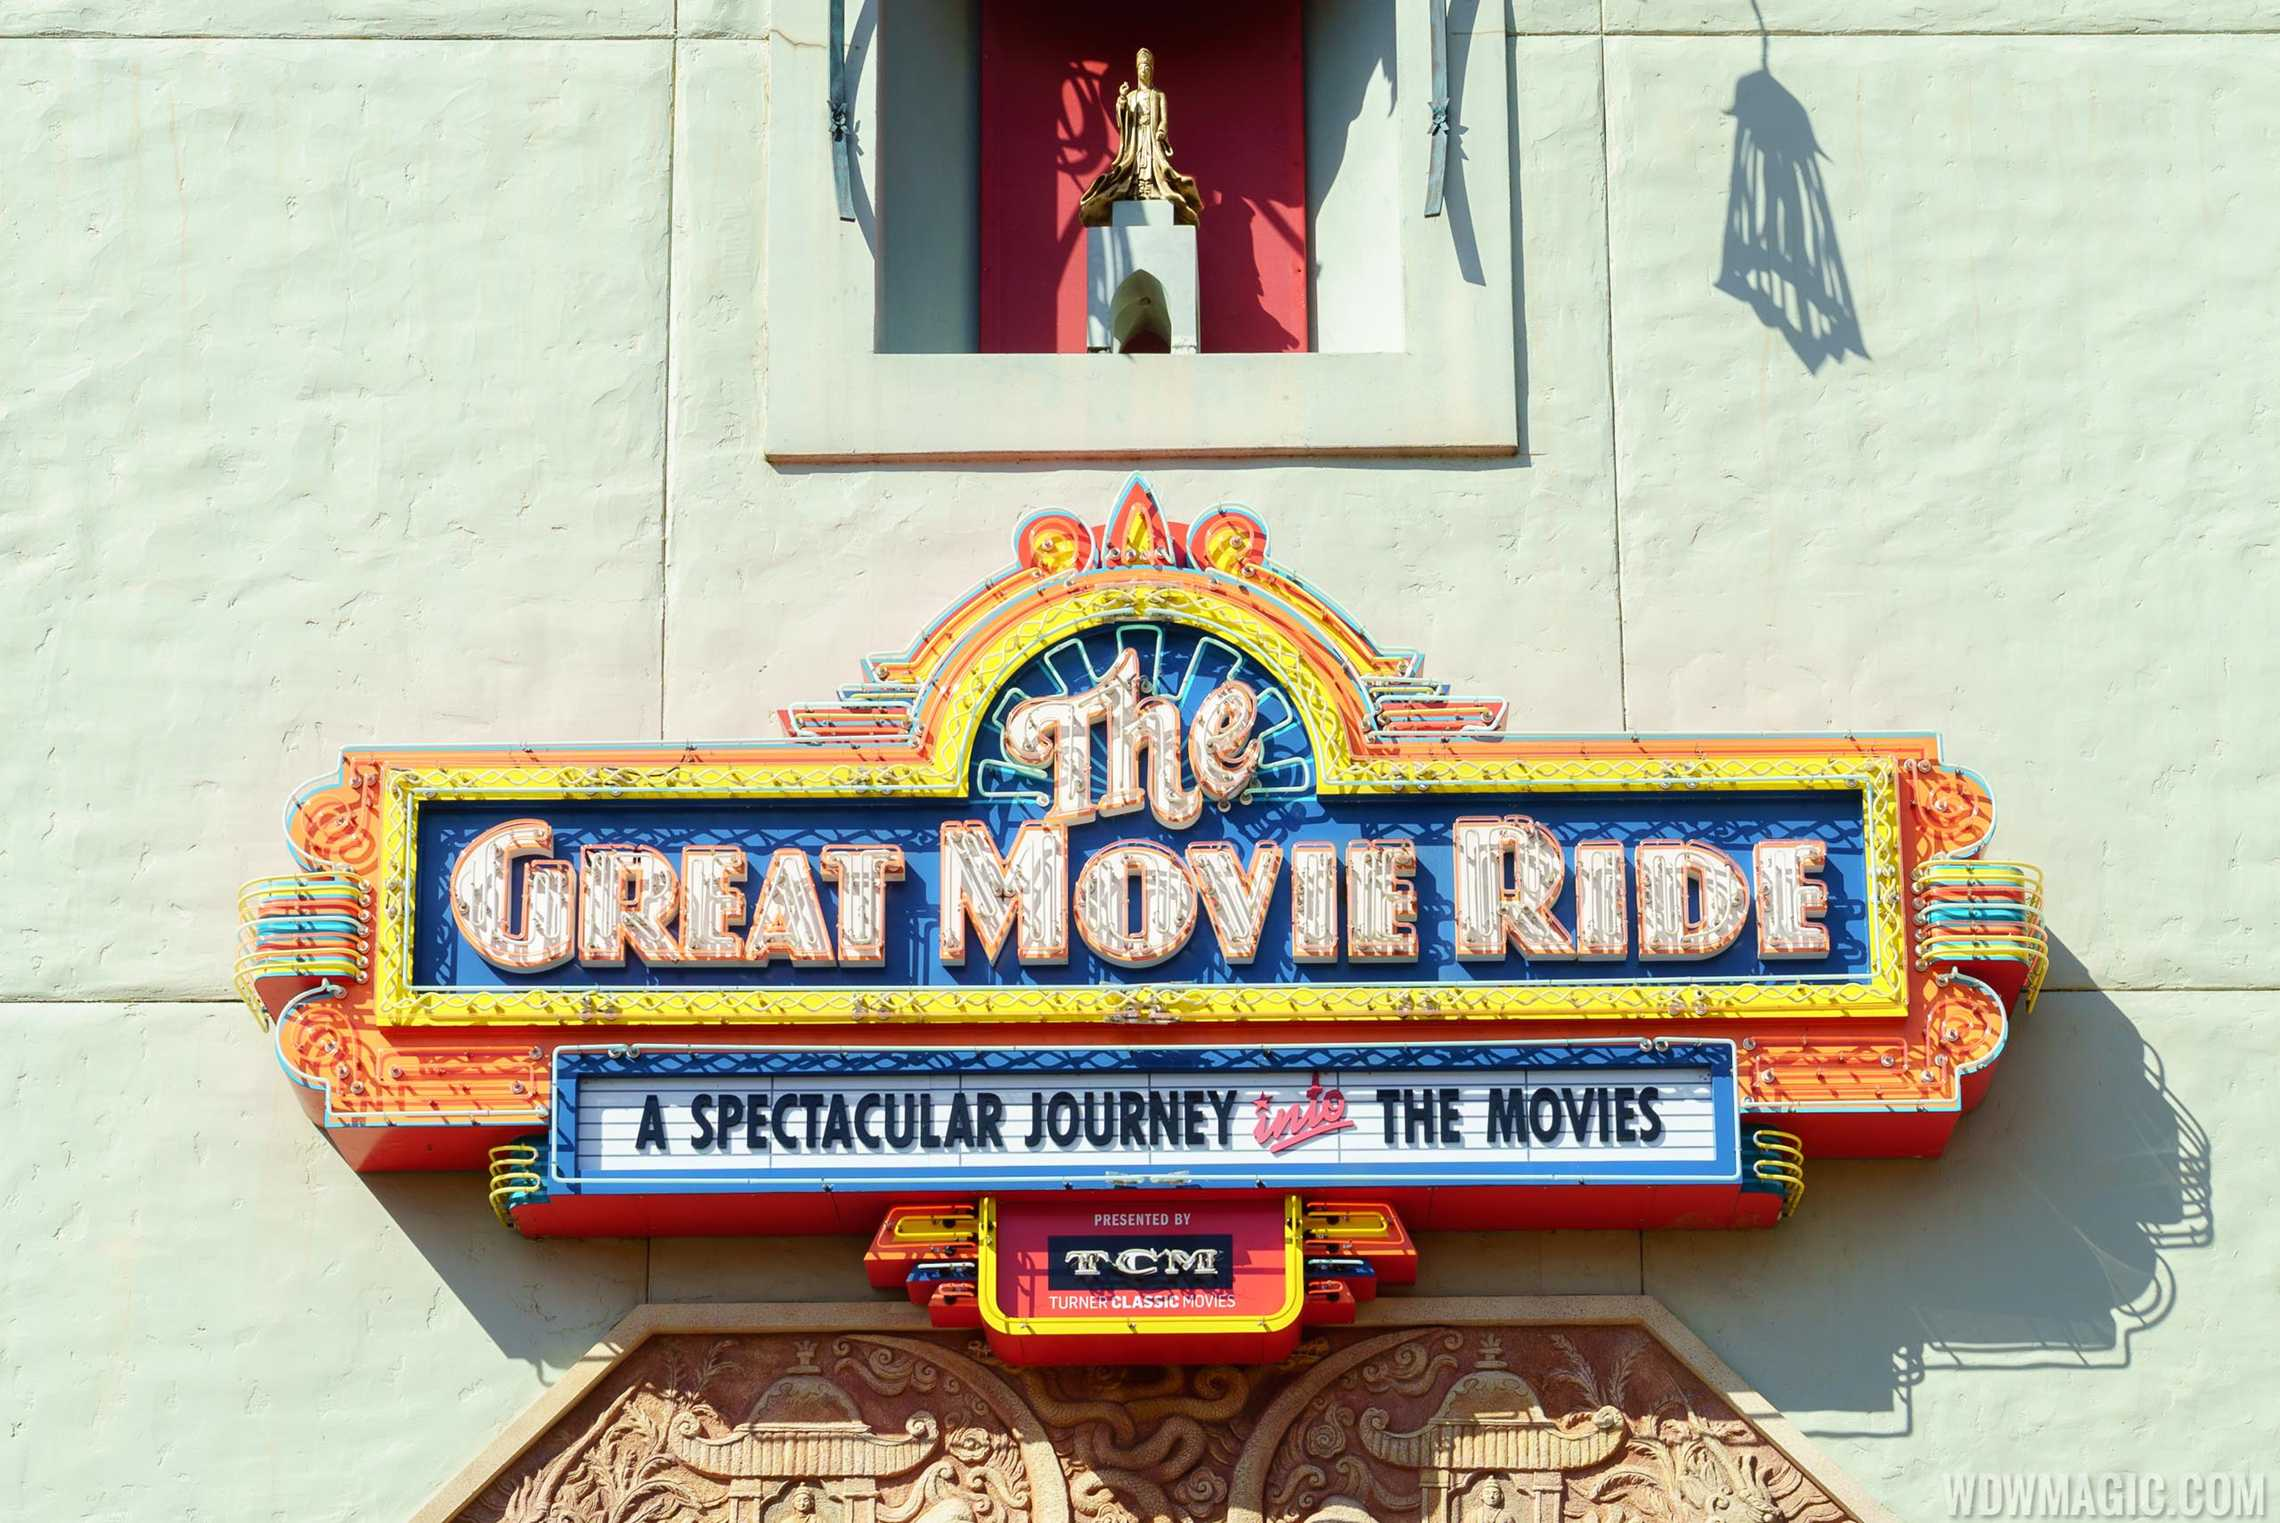 The Great Movie Ride - Signage